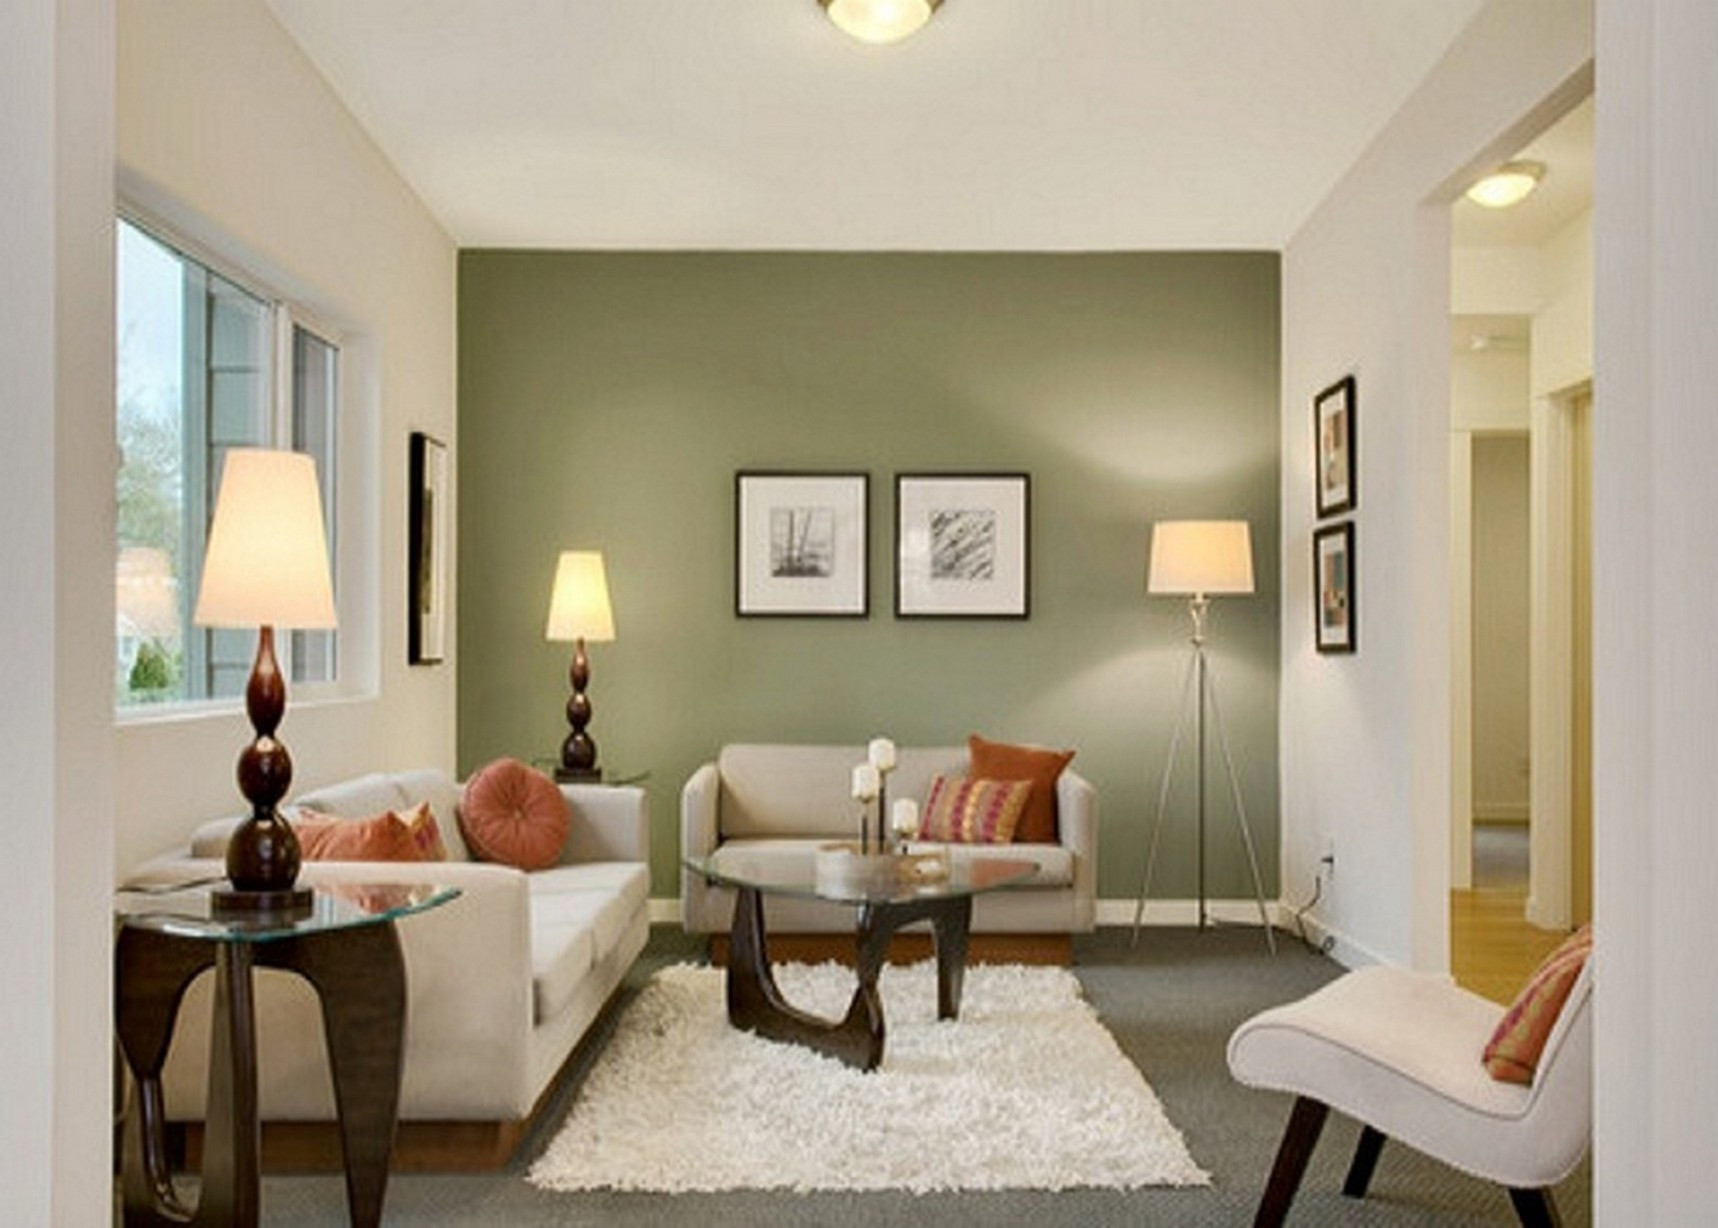 Best ideas about Accent Wall Ideas For Living Room . Save or Pin Color for Painted Accent Wall Living Room — LIVING ROOM Now.